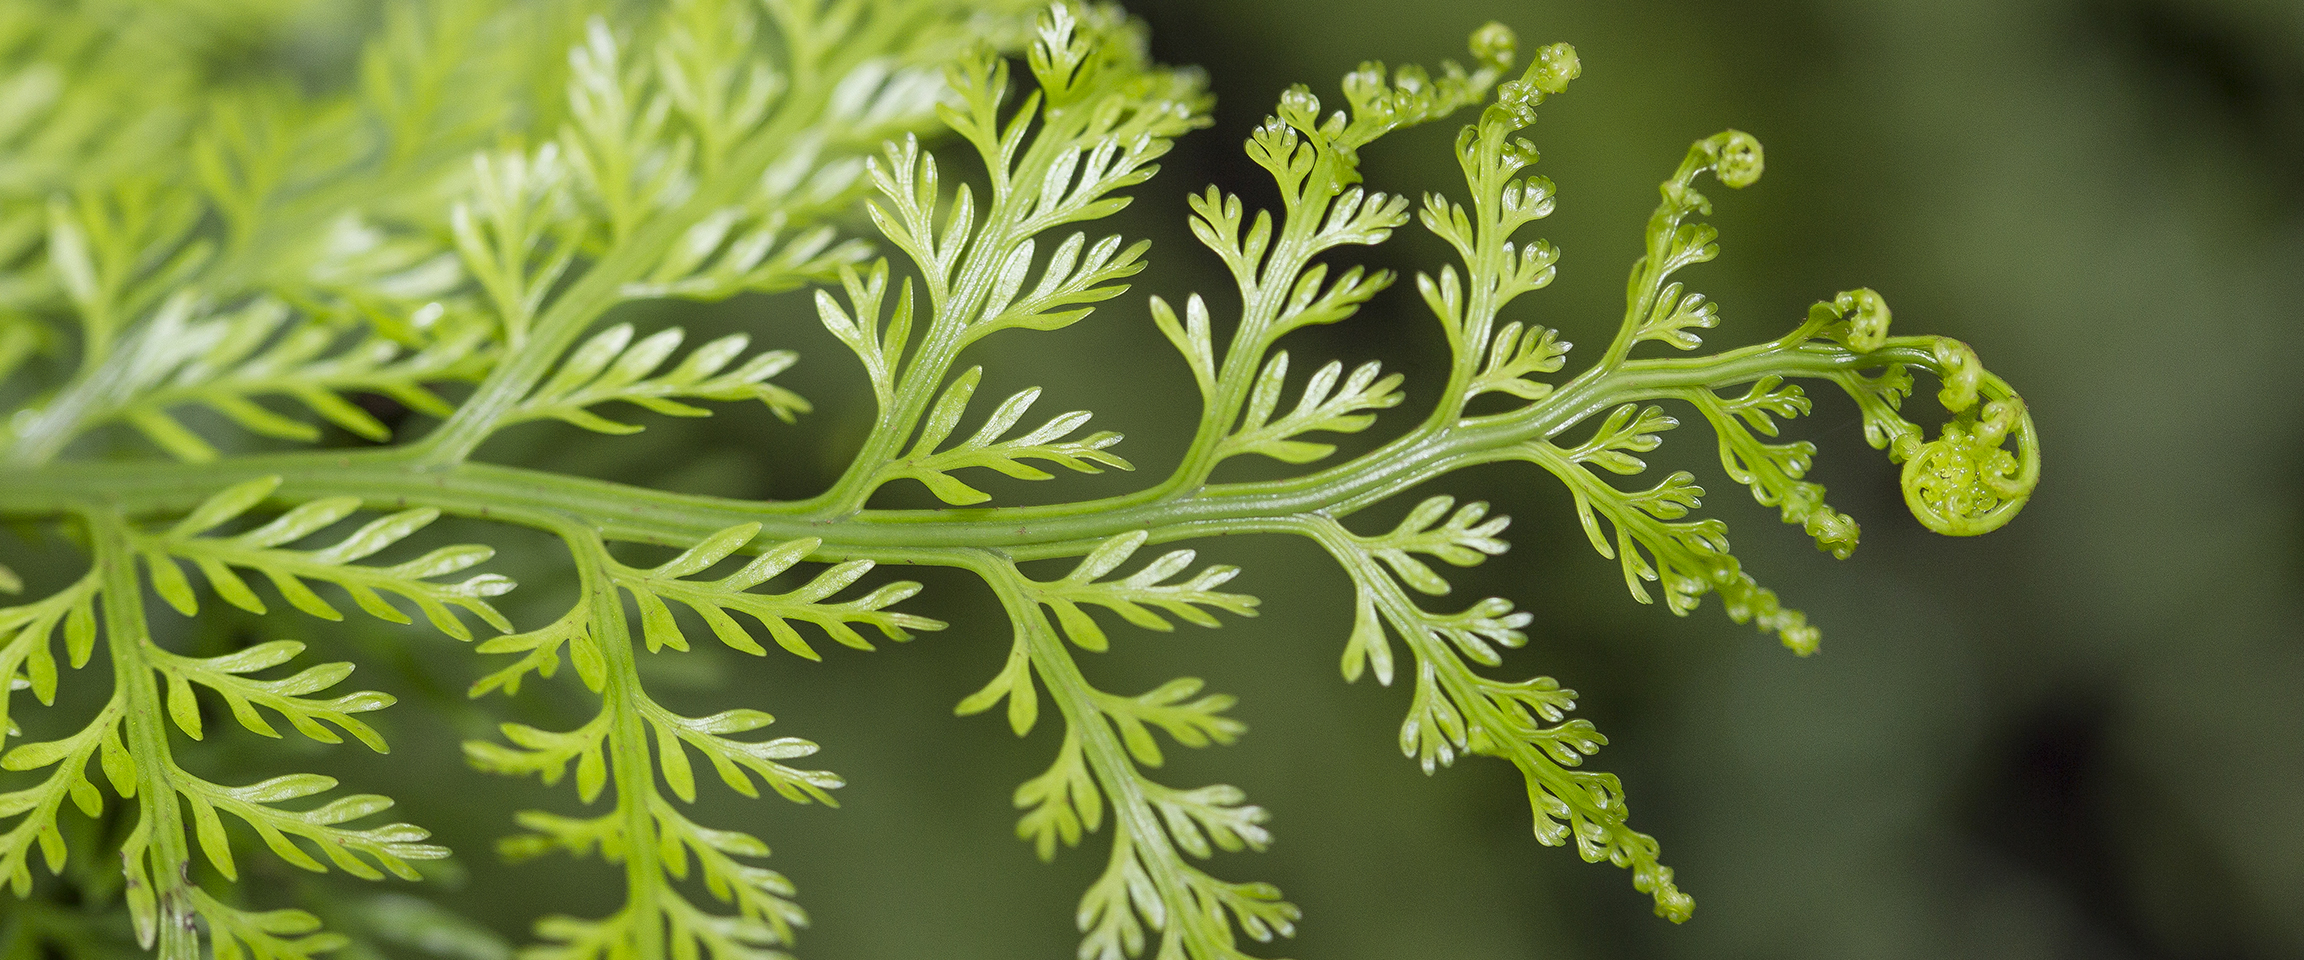 Close up of unfurling fern frond